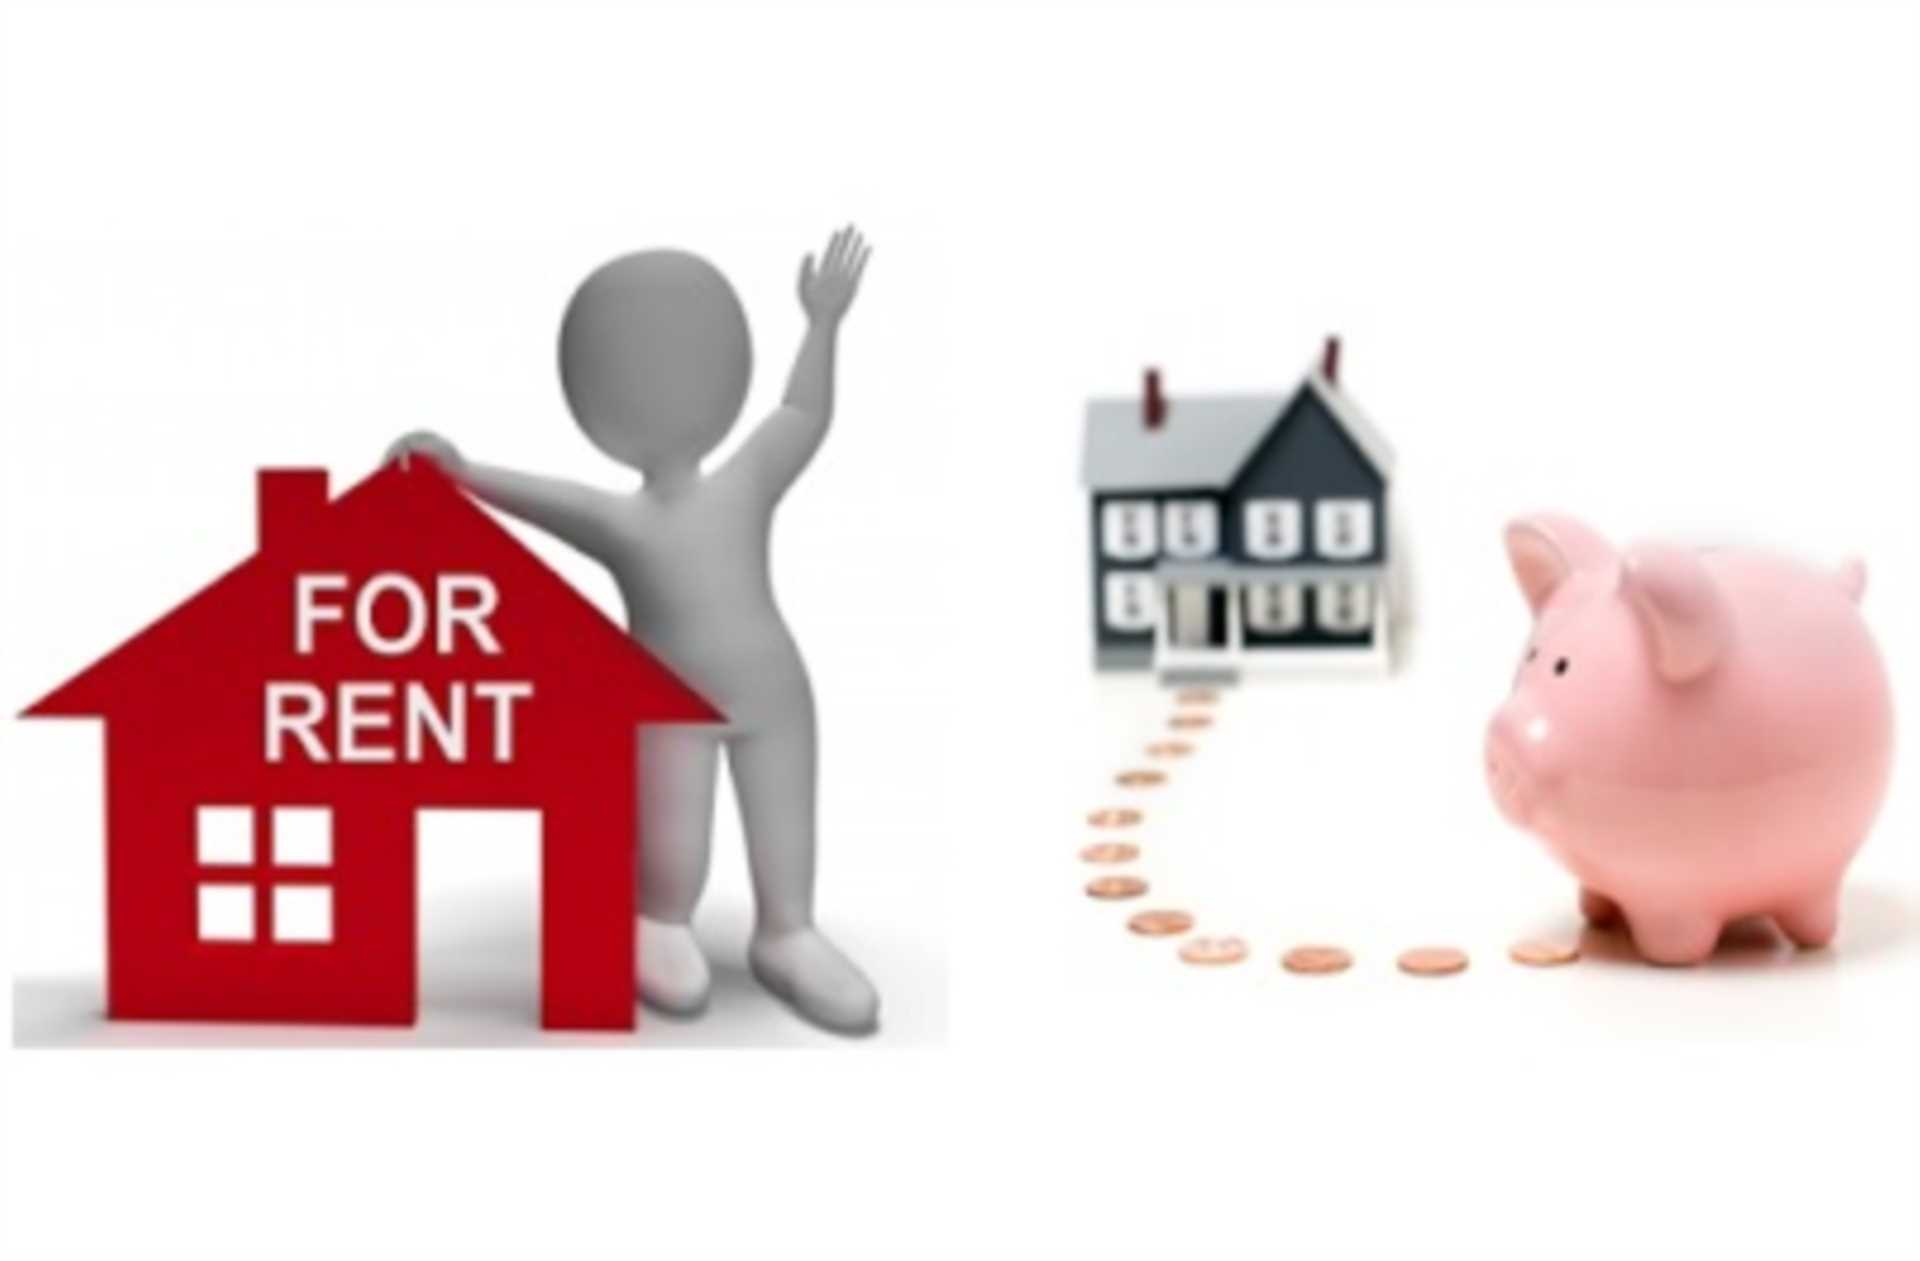 Bought or looking for a new 1 or 2 bedroom property recently? Let`s take a look at the current Marylebone rental market and see how much income a buy-to-let investment can generate for you!